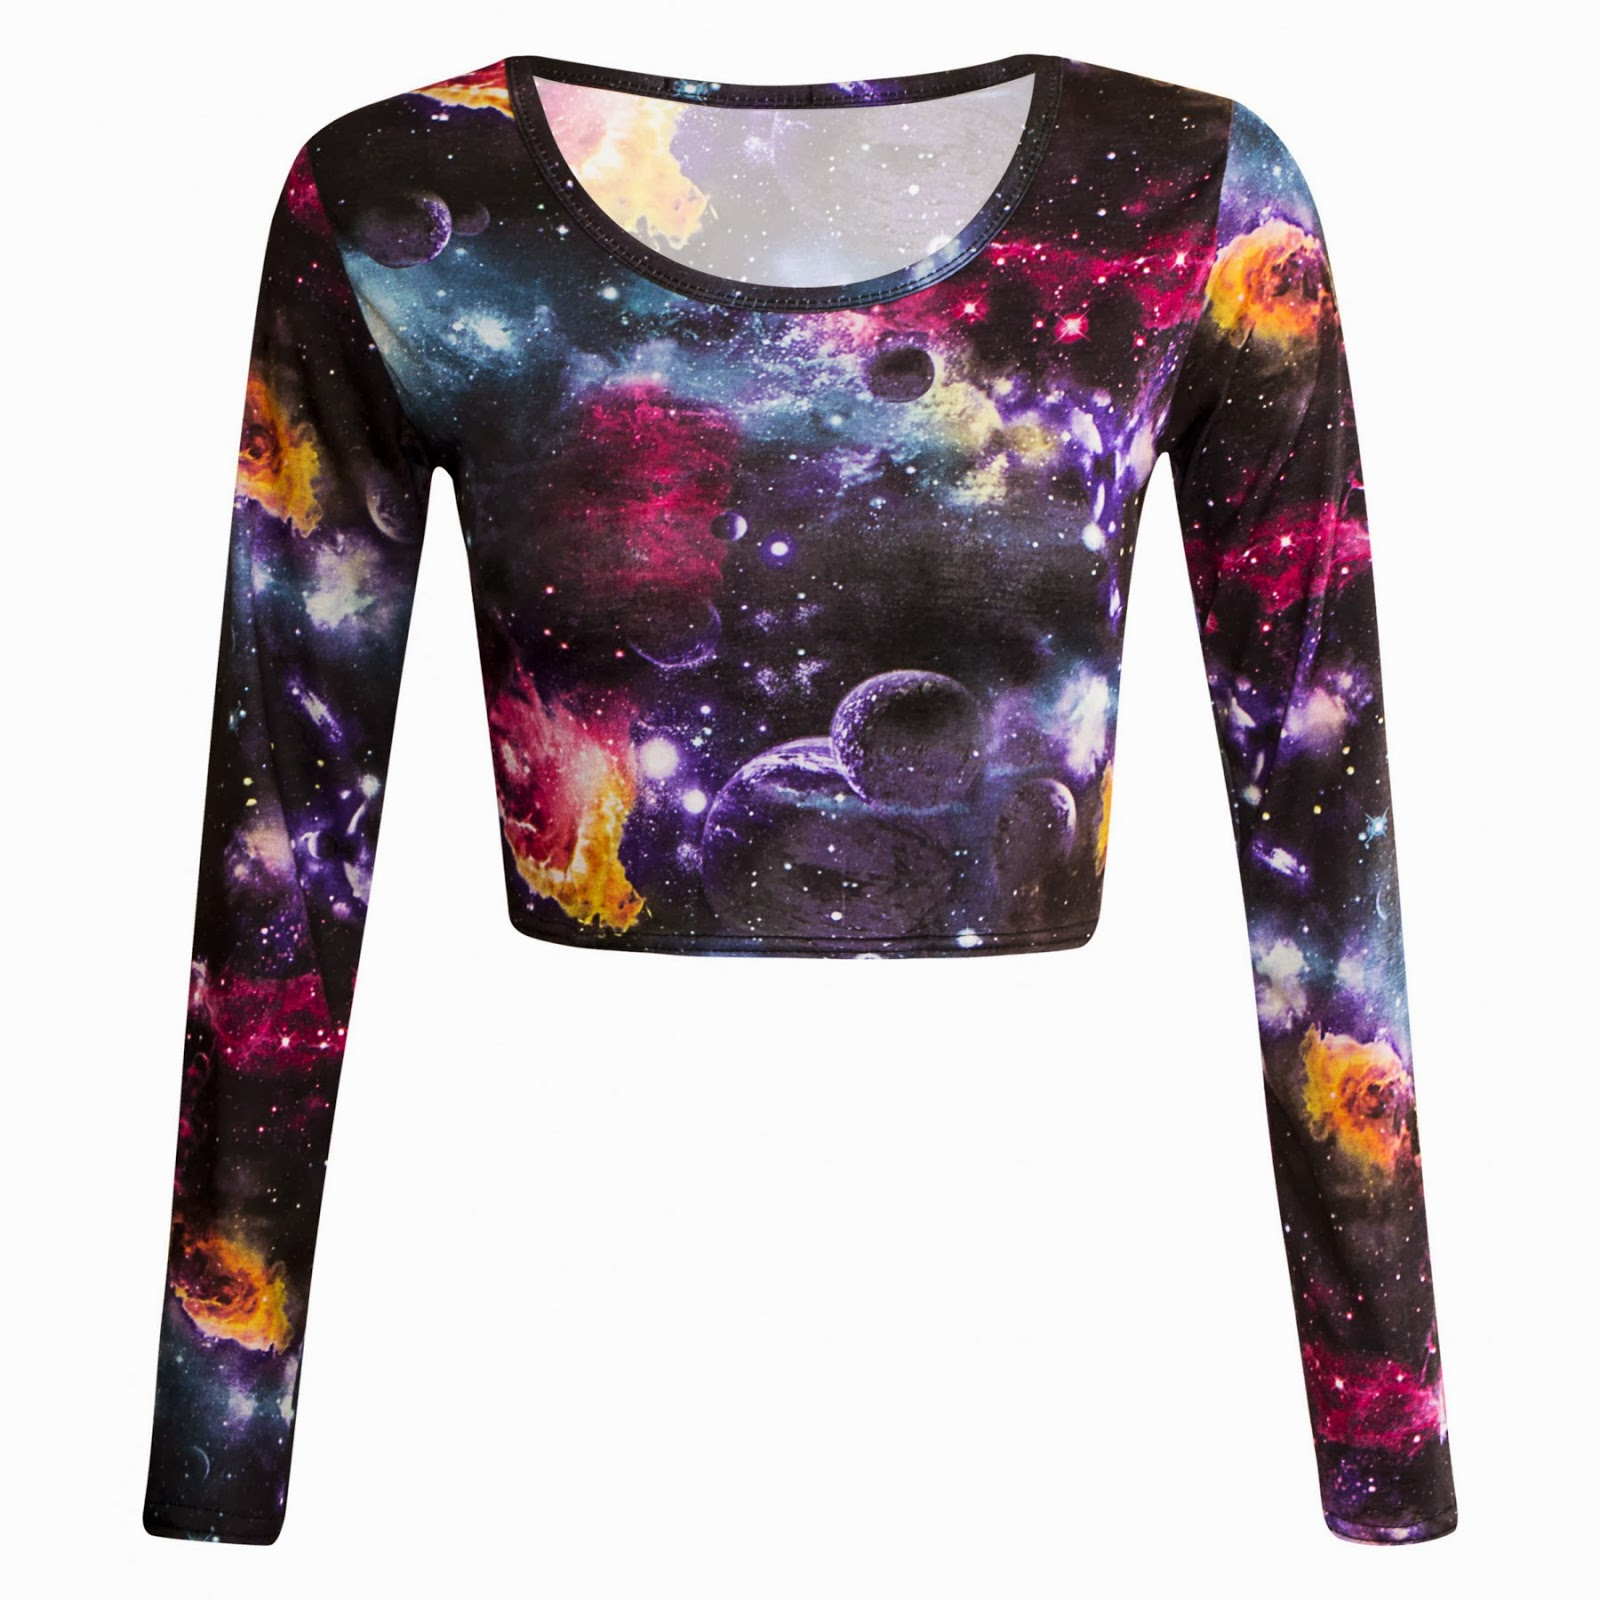 Anime And Galaxy Galaxy Clothing